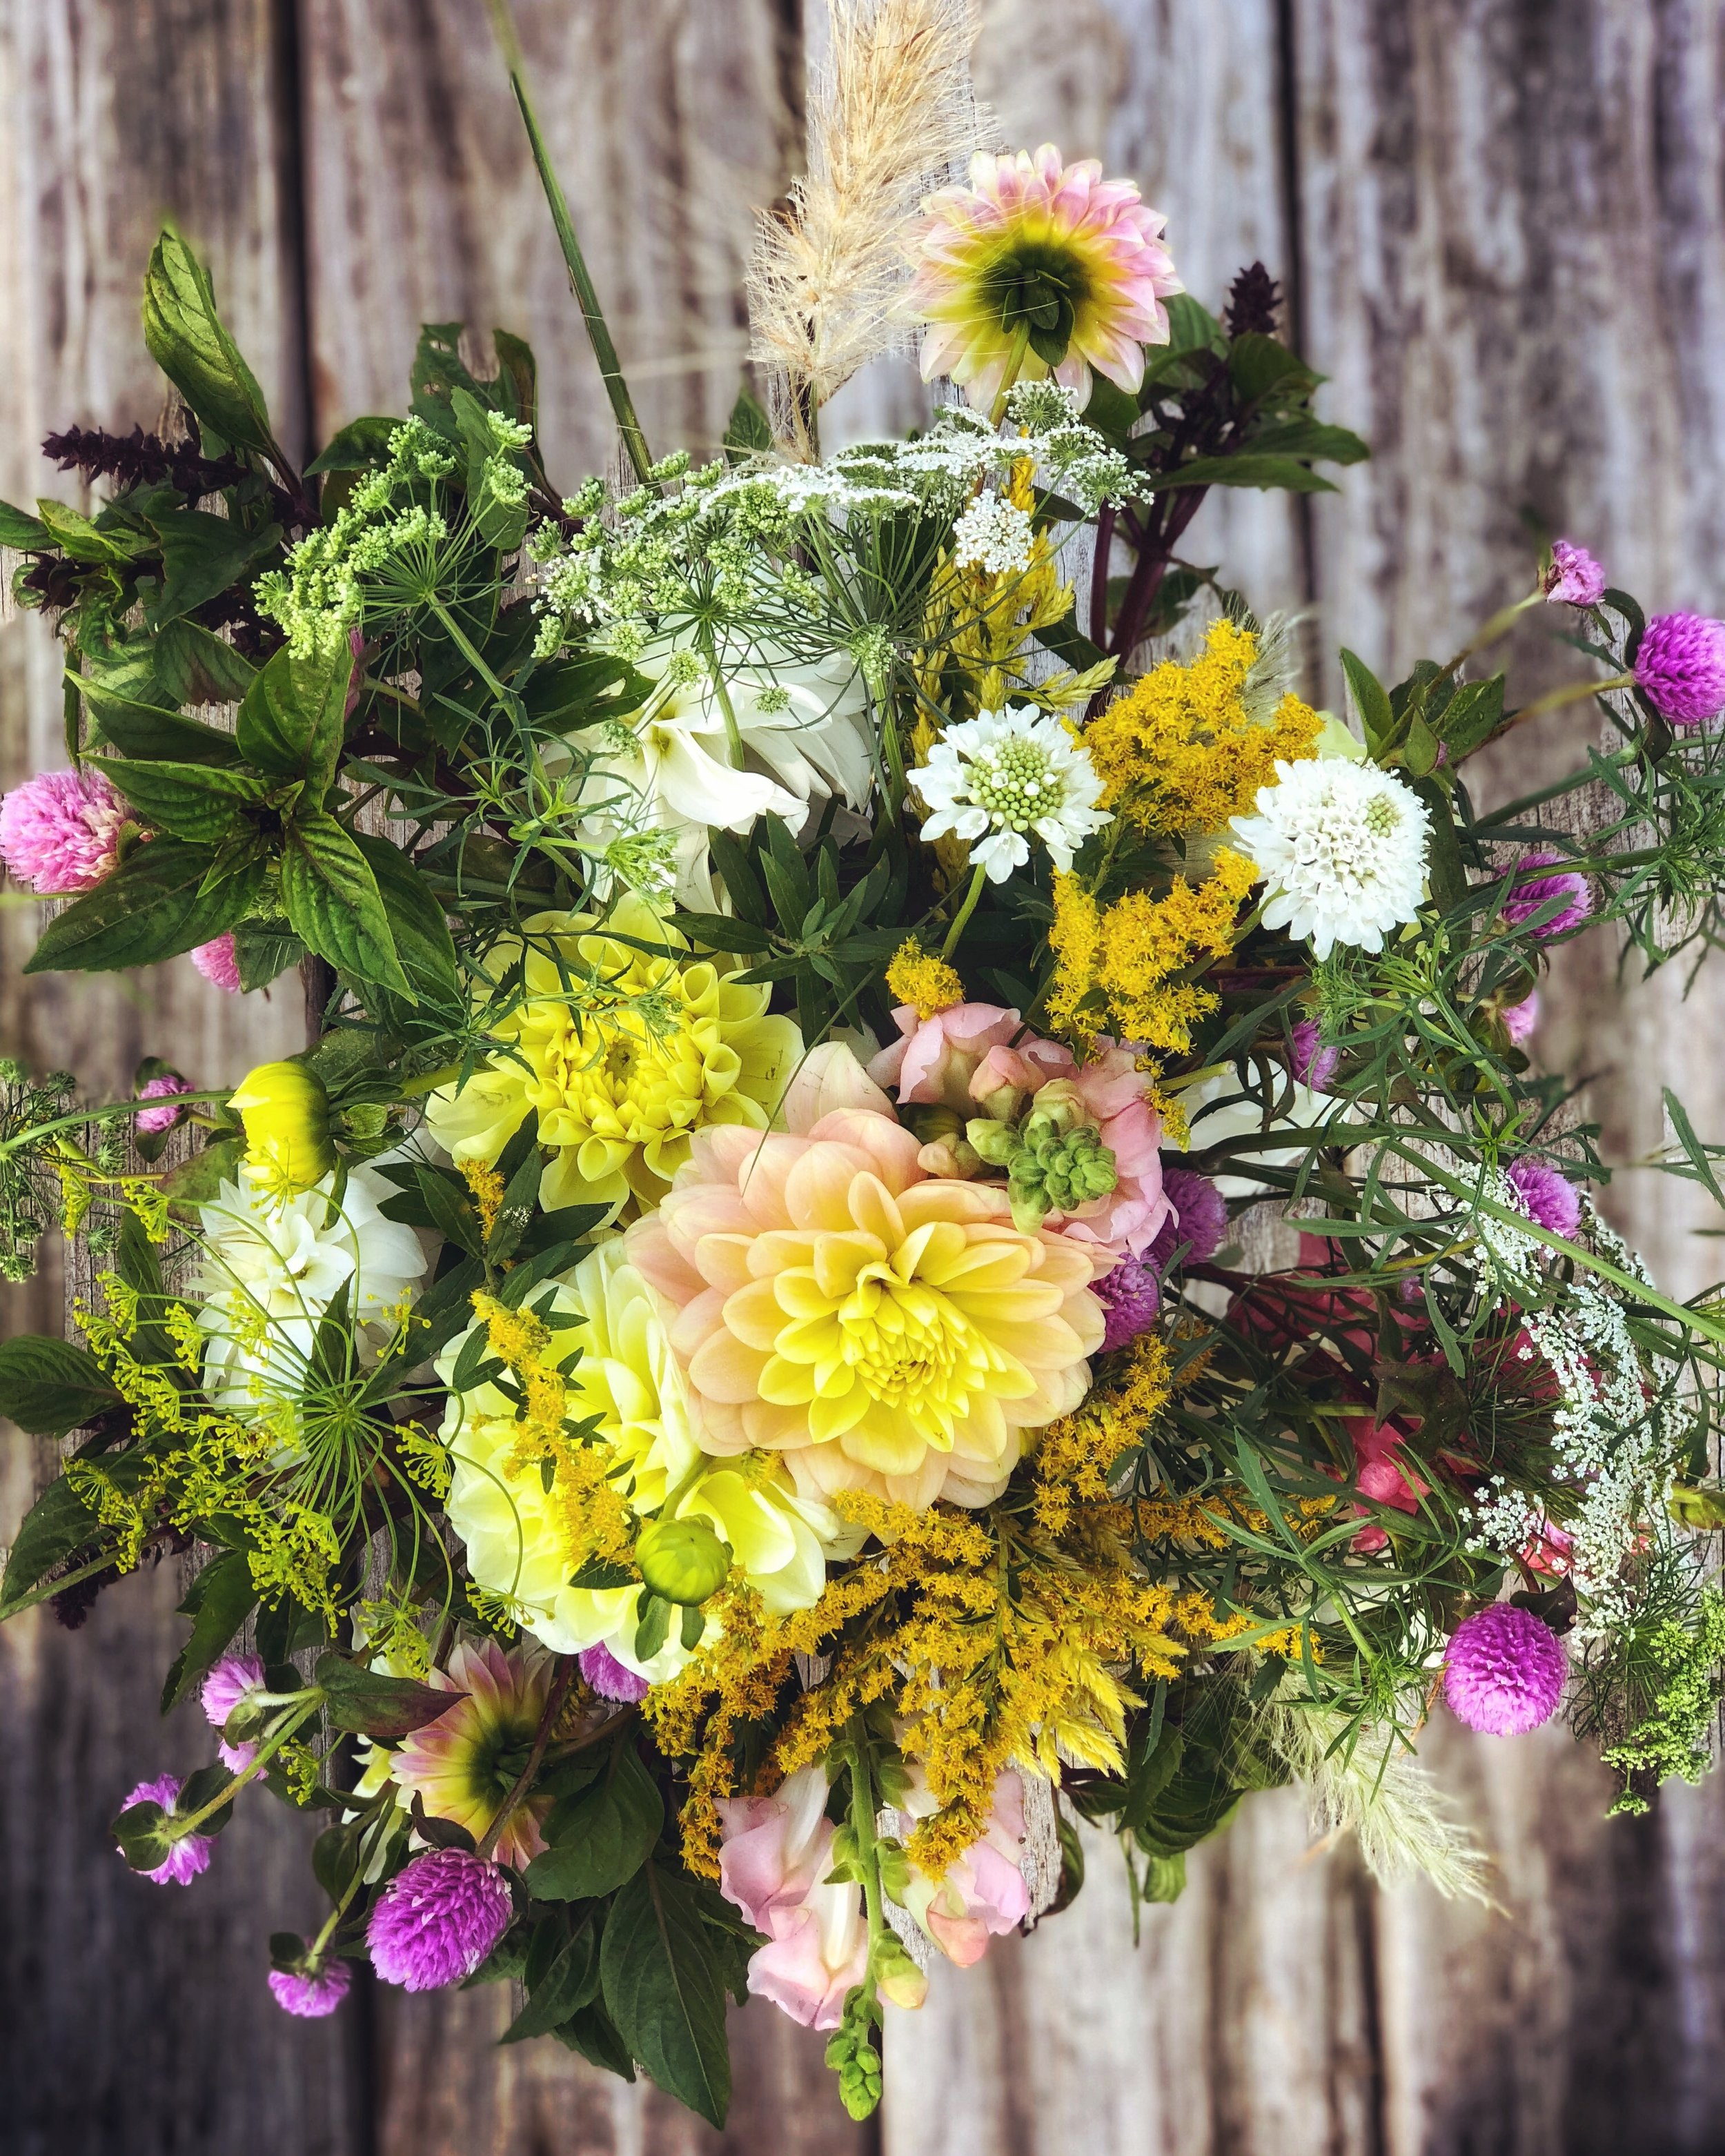 Full Flower Season Subscription (sold out) - Slow down this summer and enjoy each fragrant moment until first frost. Make your world bloom for a full season of 14 weeks of farm-fresh loveliness. Enjoy a weekly hand-tied bouquet of the season's best starting in July and lasting until mid-October.